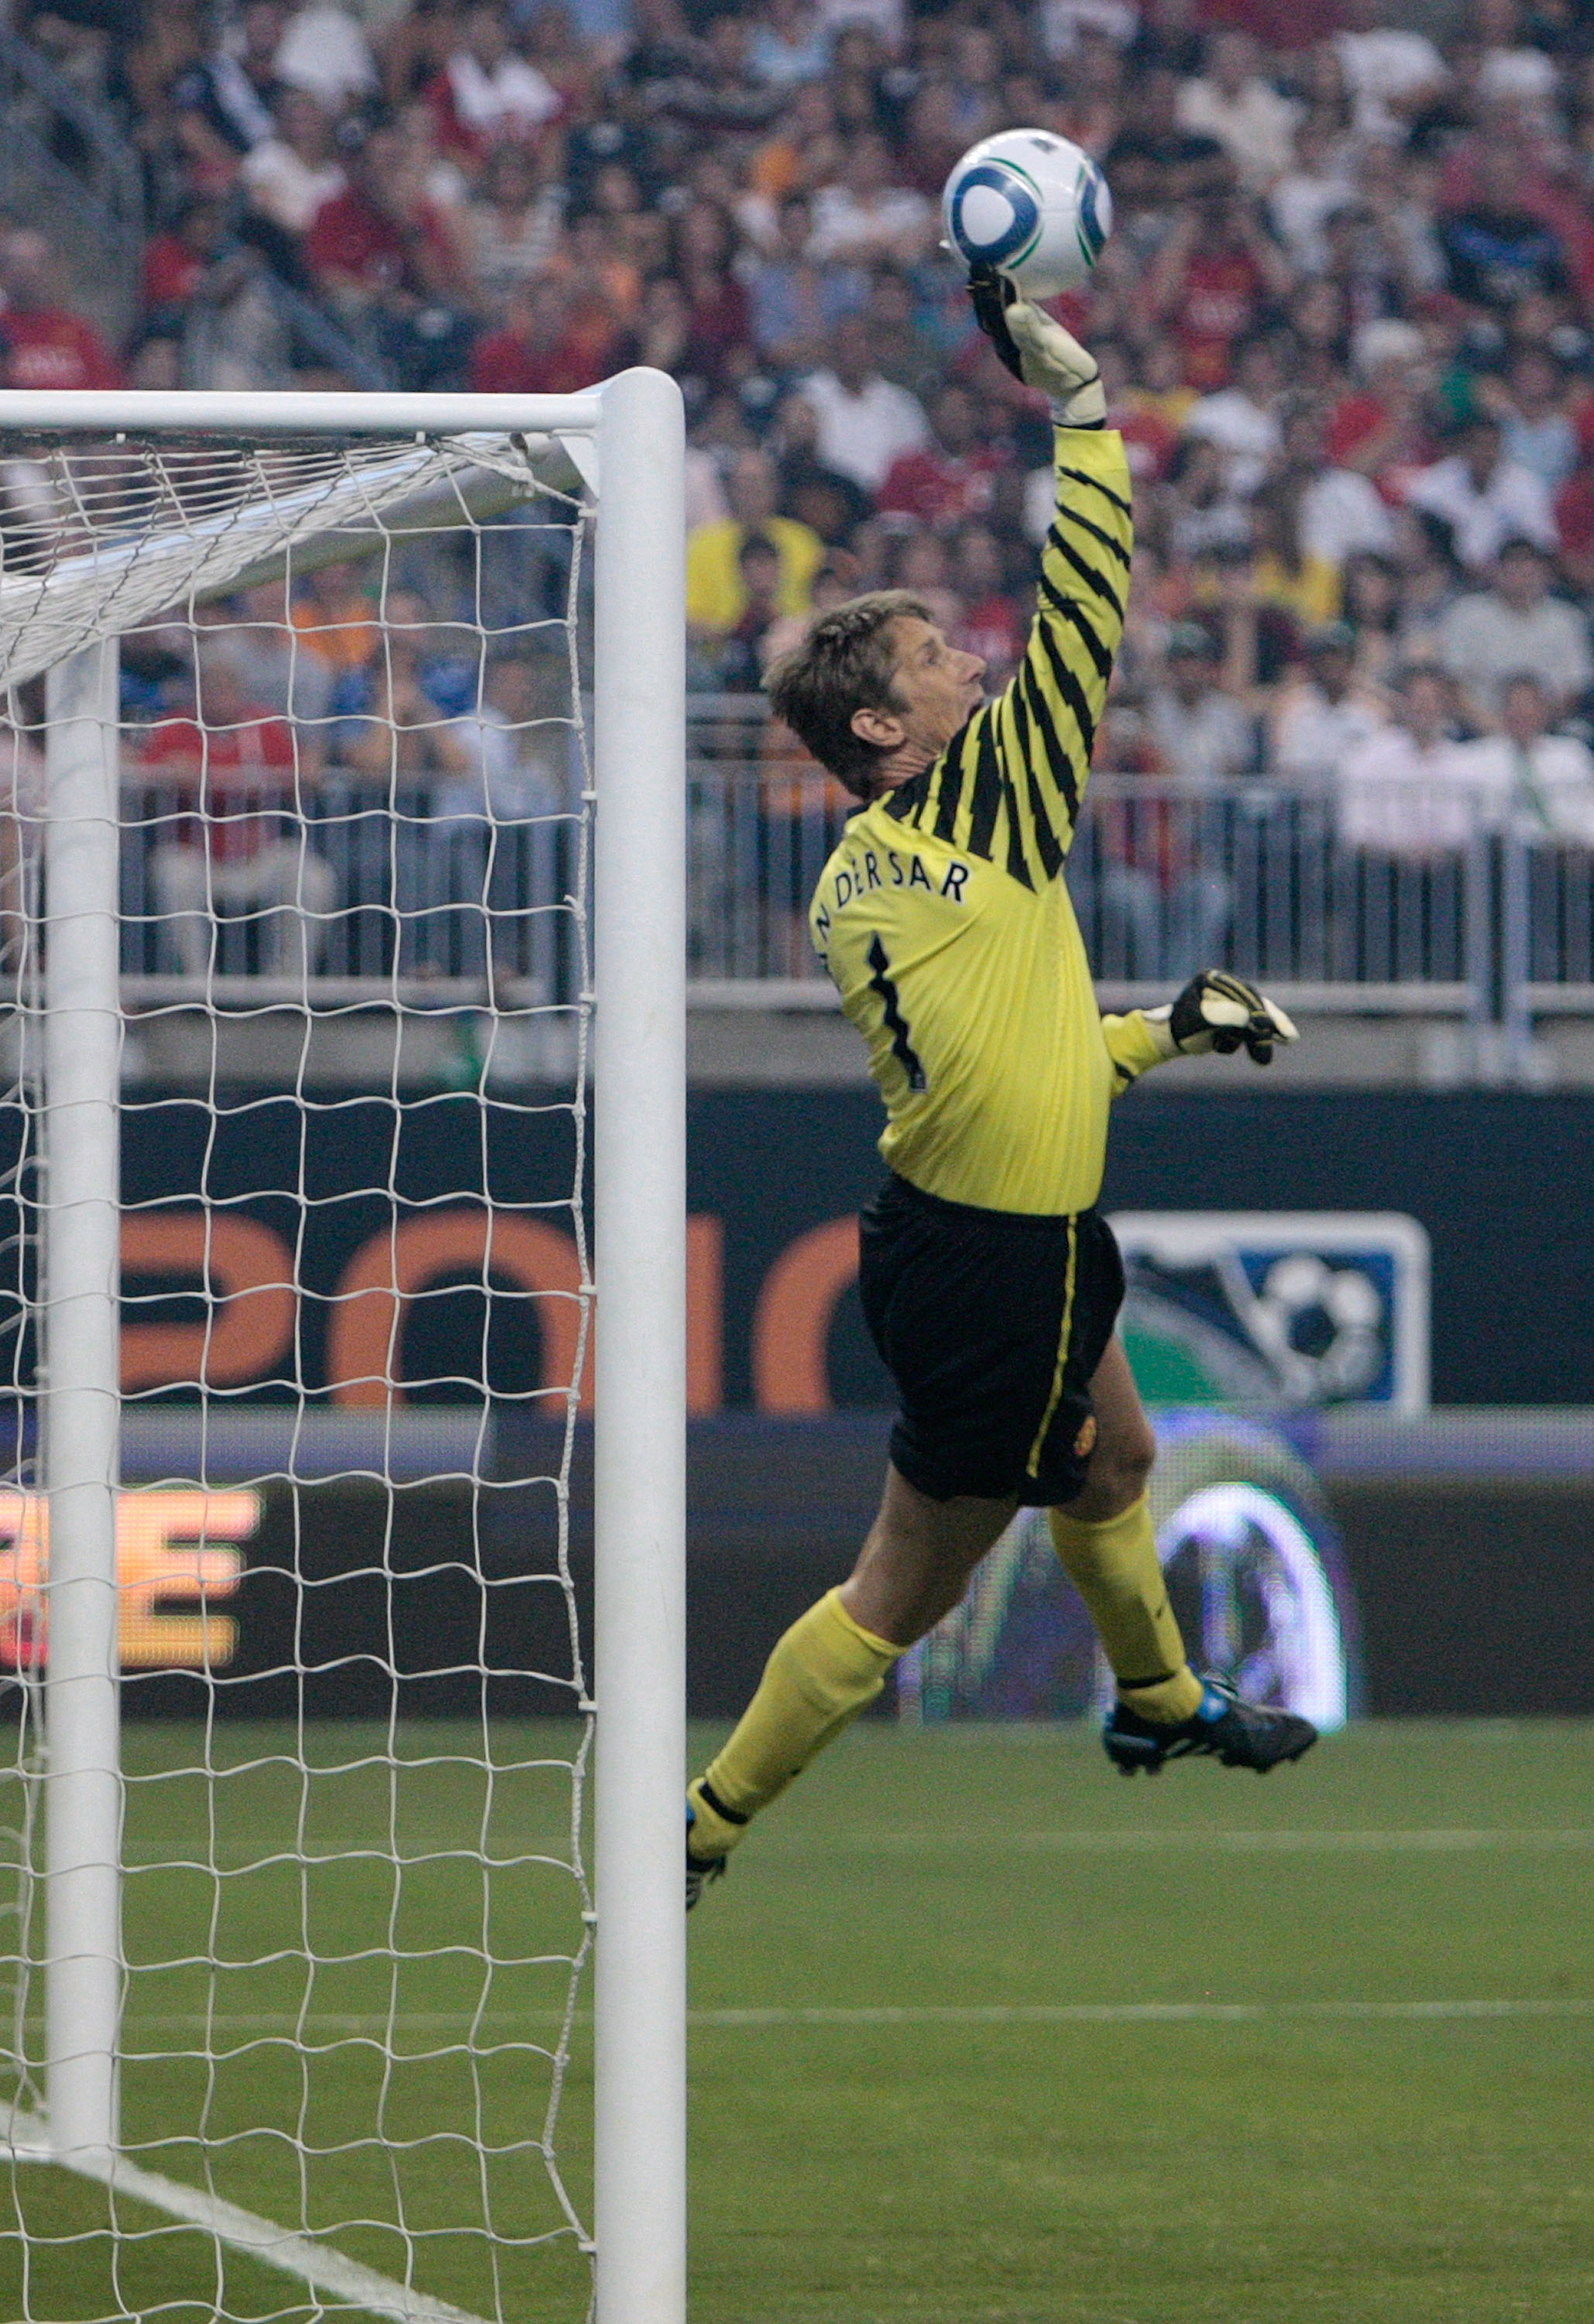 HOUSTON - JULY 28:  Edwin van der Sar #1 of Manchester United makes a save during the MLS All Star Game at Reliant Stadium on July 28, 2010 in Houston, Texas.  (Photo by Bob Levey/Getty Images)